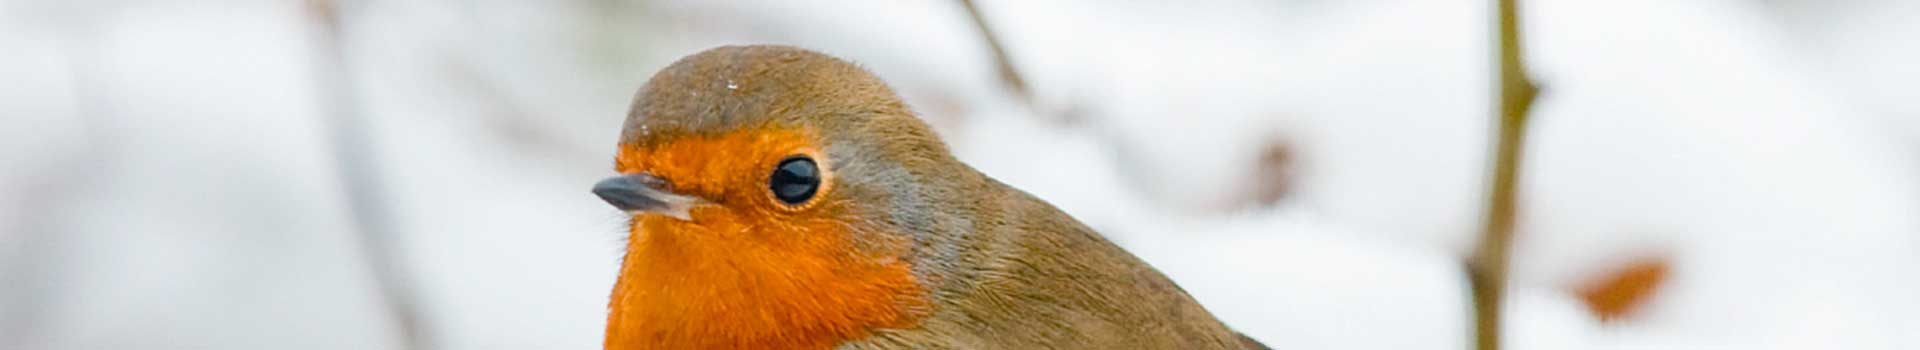 How To Look After Garden Birds In Winter